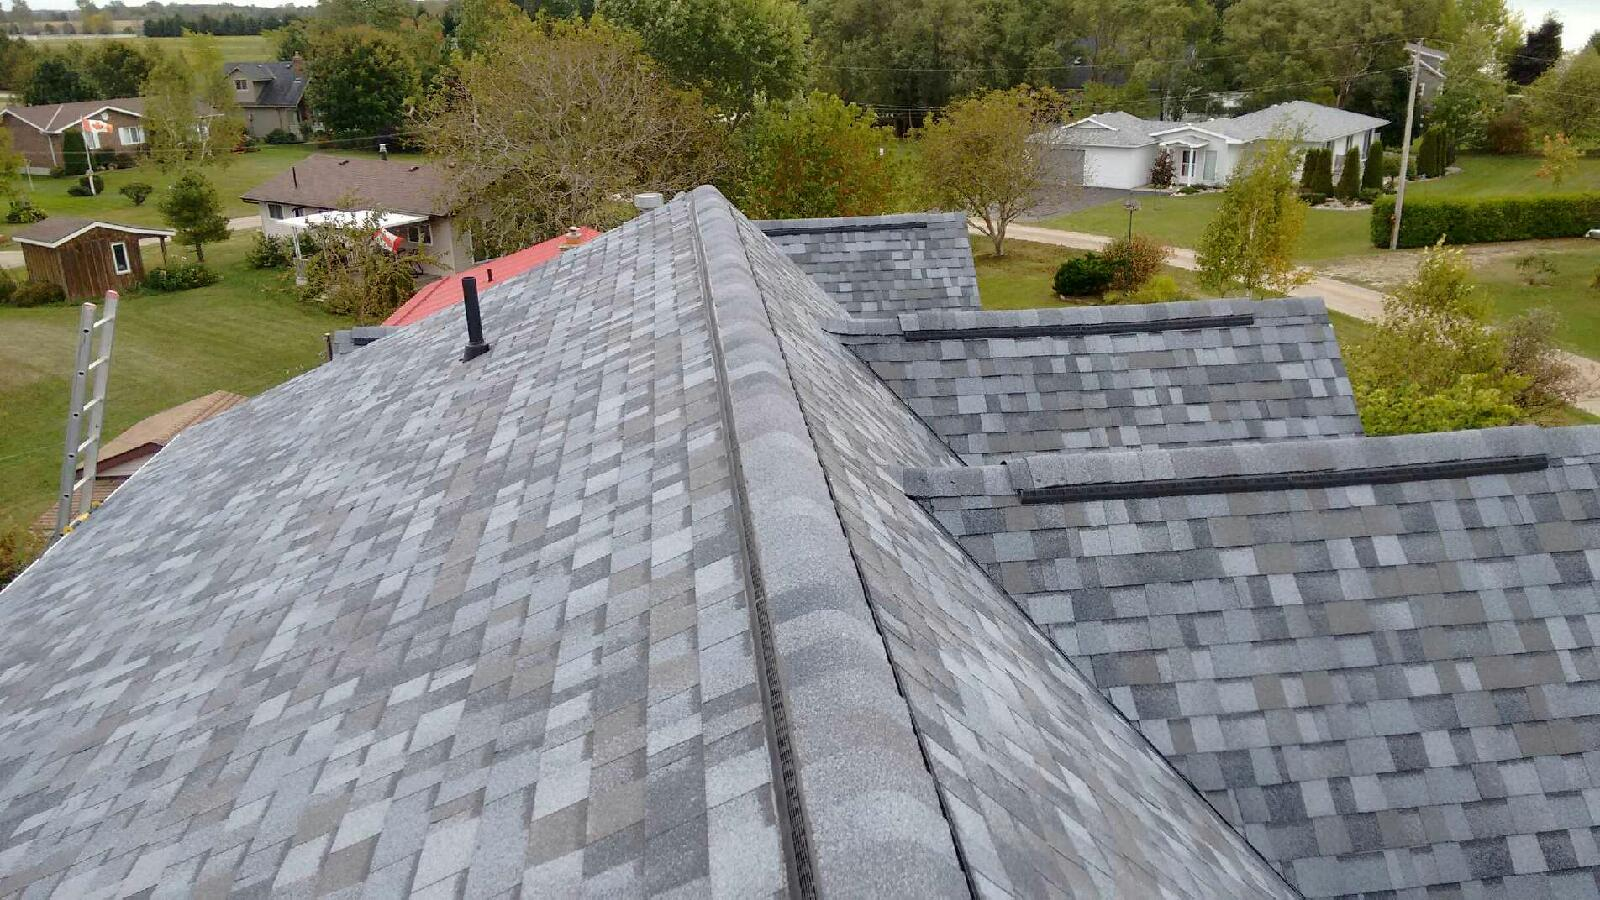 When You Contact Us At AM Roofing Solutions, Whether By Phone Or Email, We  Will Respond To Make Arrangements To Assess Your Residential Roofing  Problem.